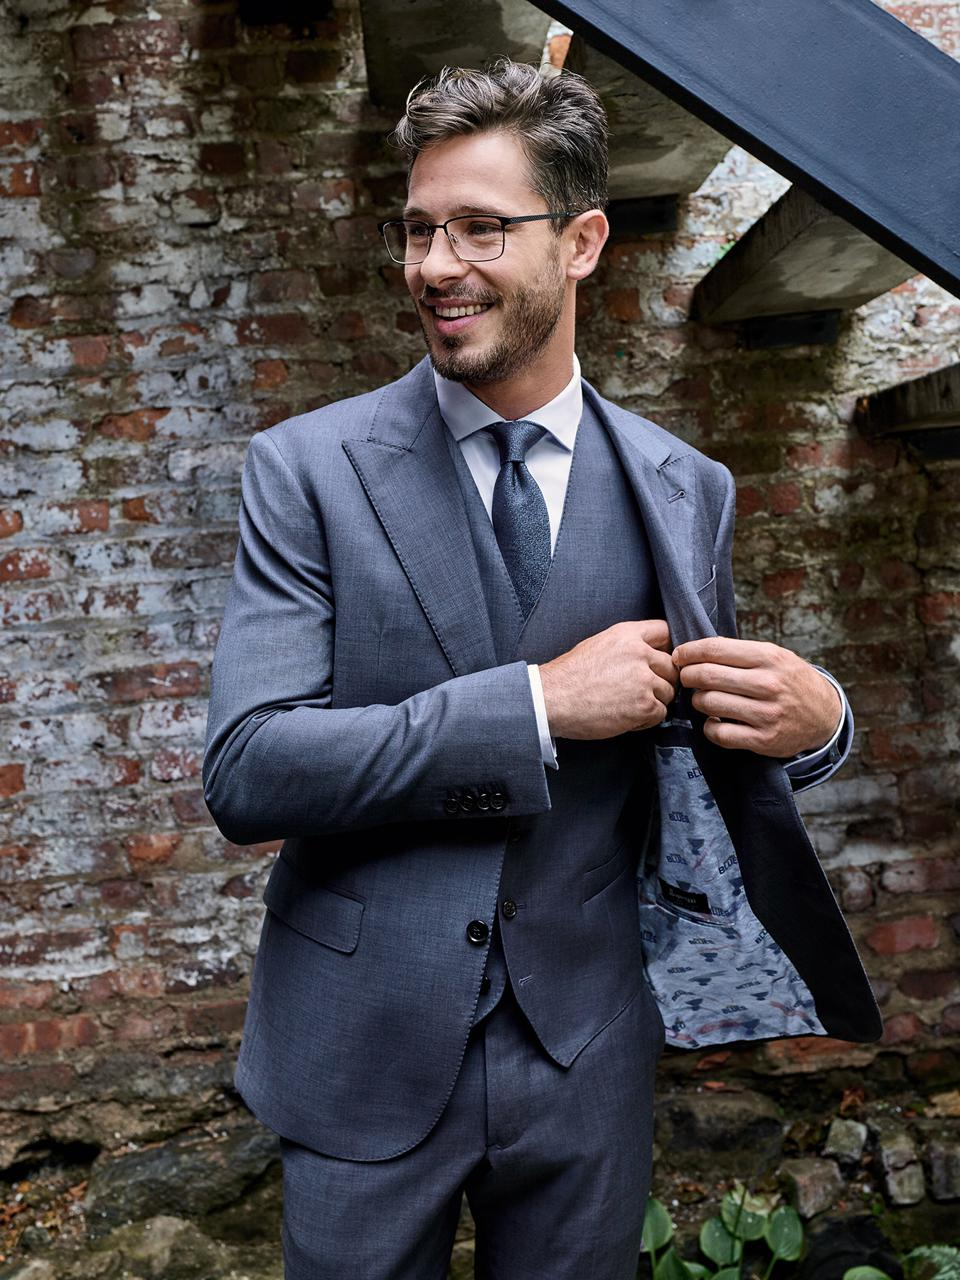 New Grooming: The importance of proper dress and fresh face in the rise to corporate ascension. Suit by Men's Wearhouse